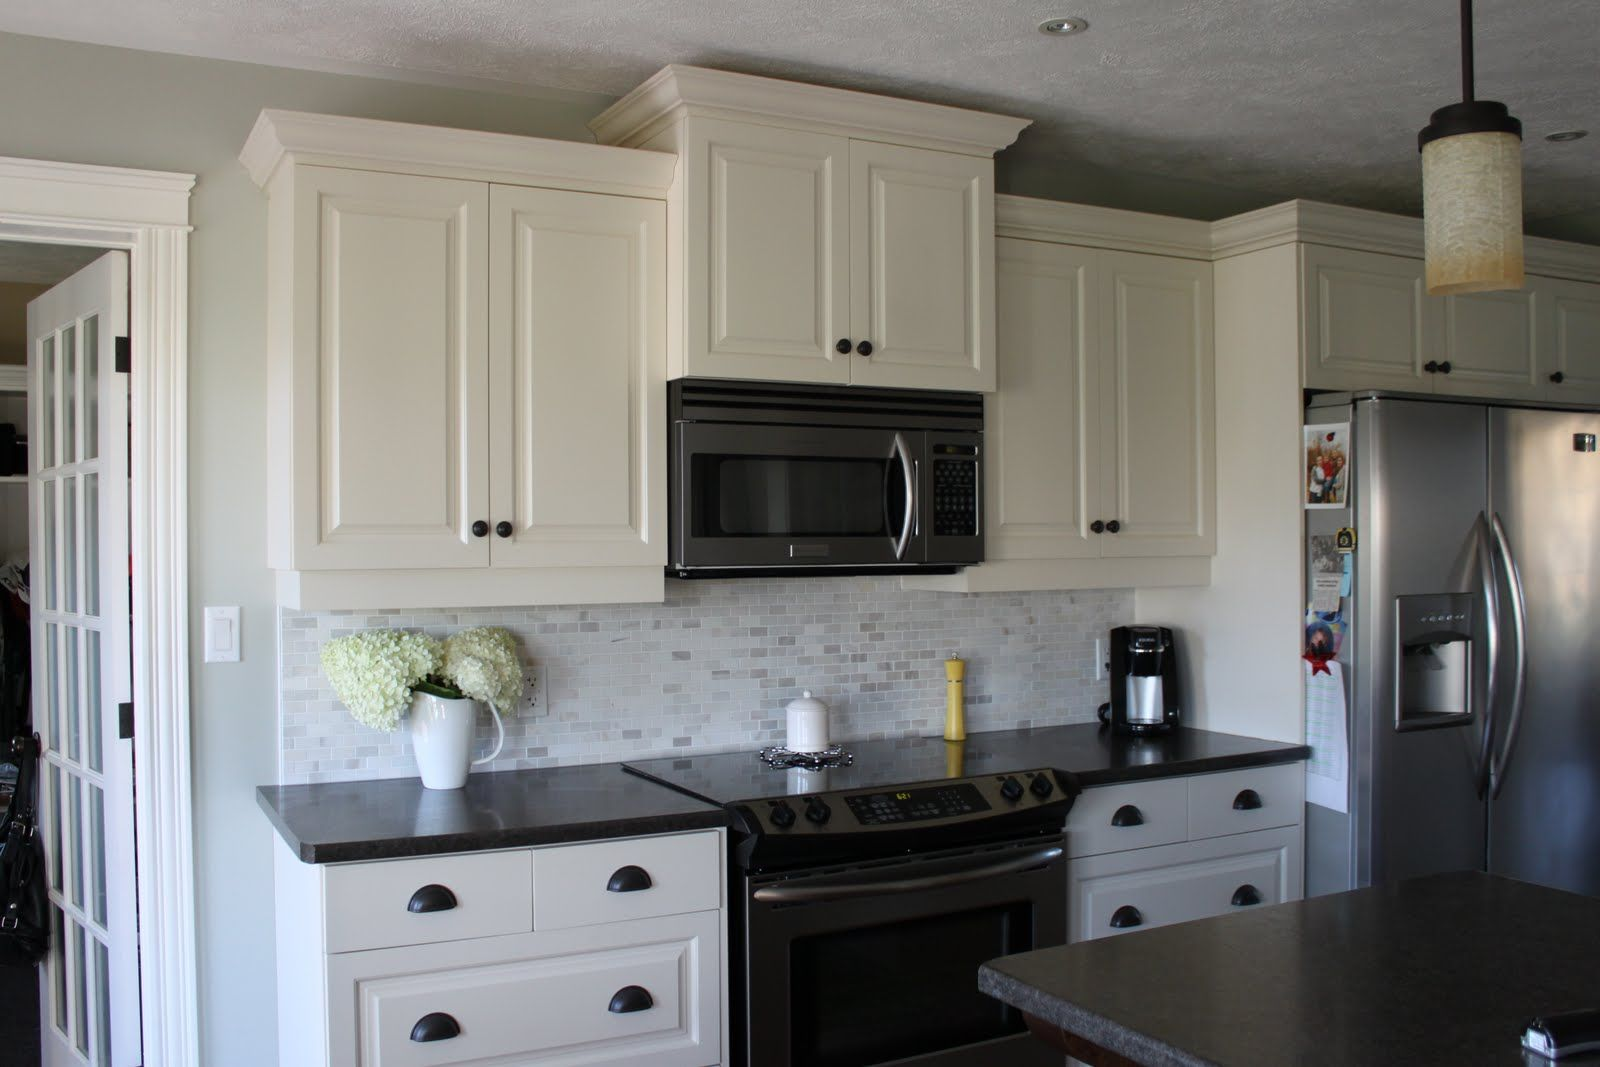 white cabinets with gray backsplash kitchen ideas pinterest grey backsplash white. Black Bedroom Furniture Sets. Home Design Ideas